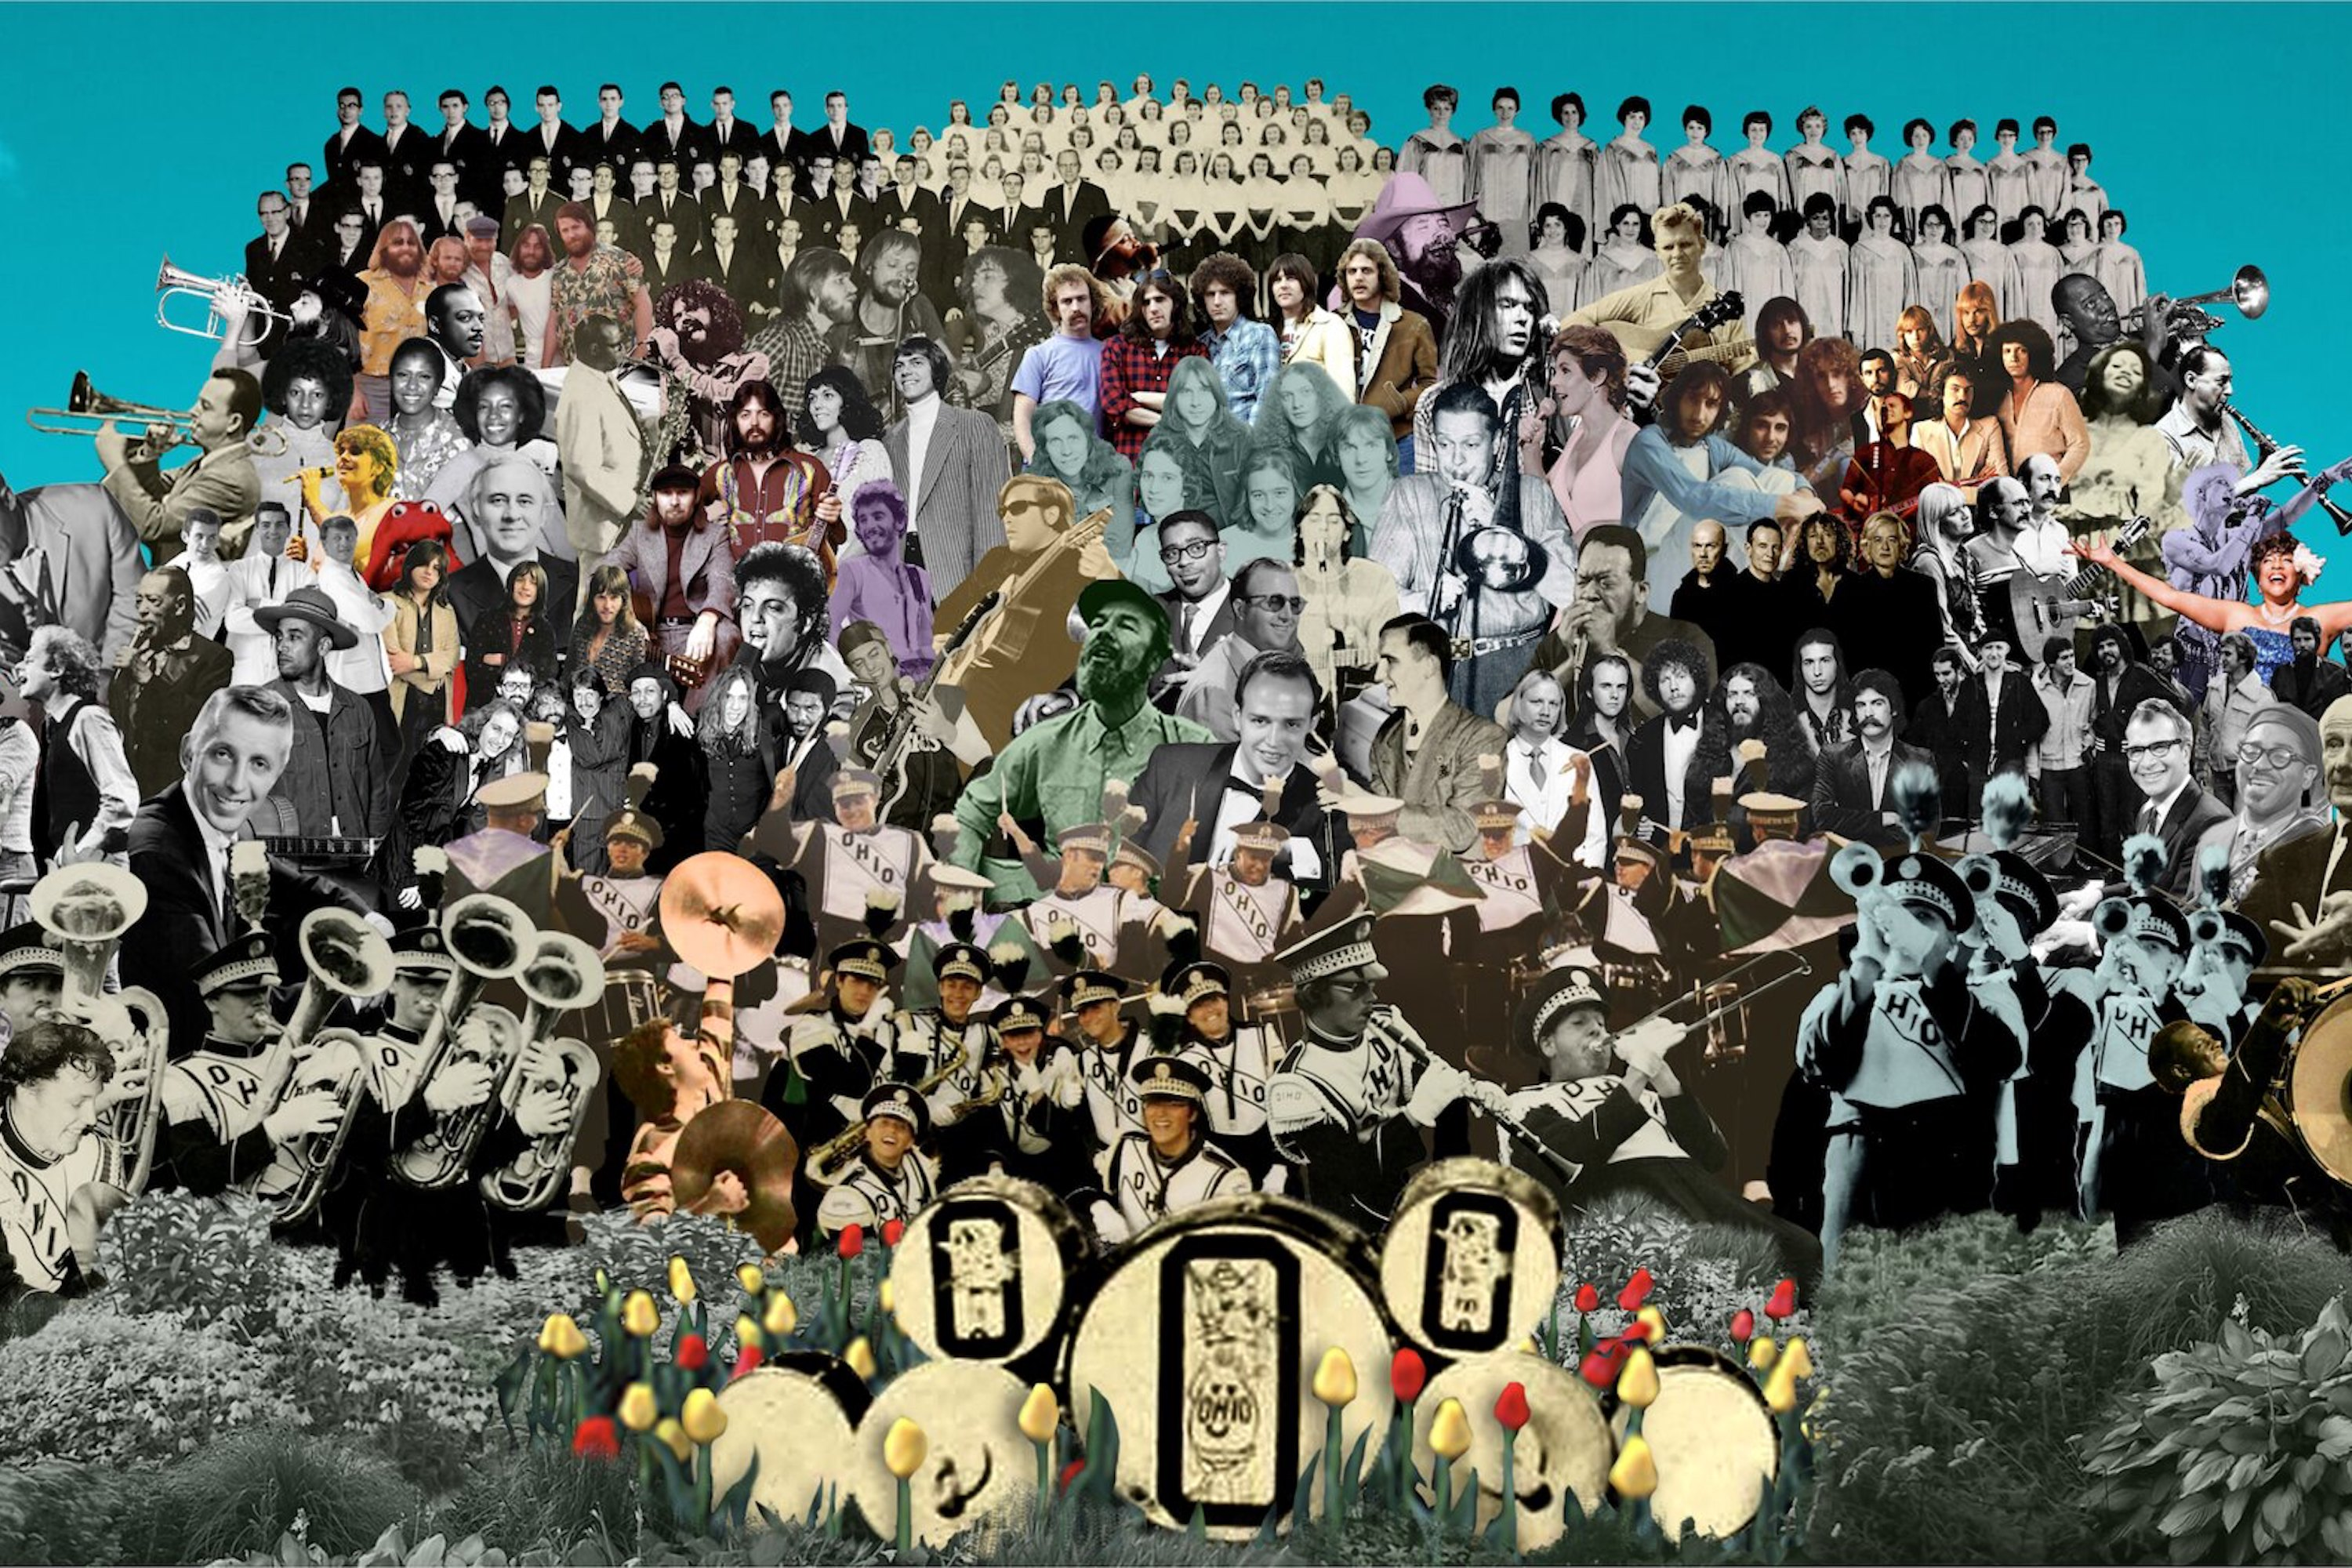 A collage of musicians in the style of the Sgt Pepper's album art.